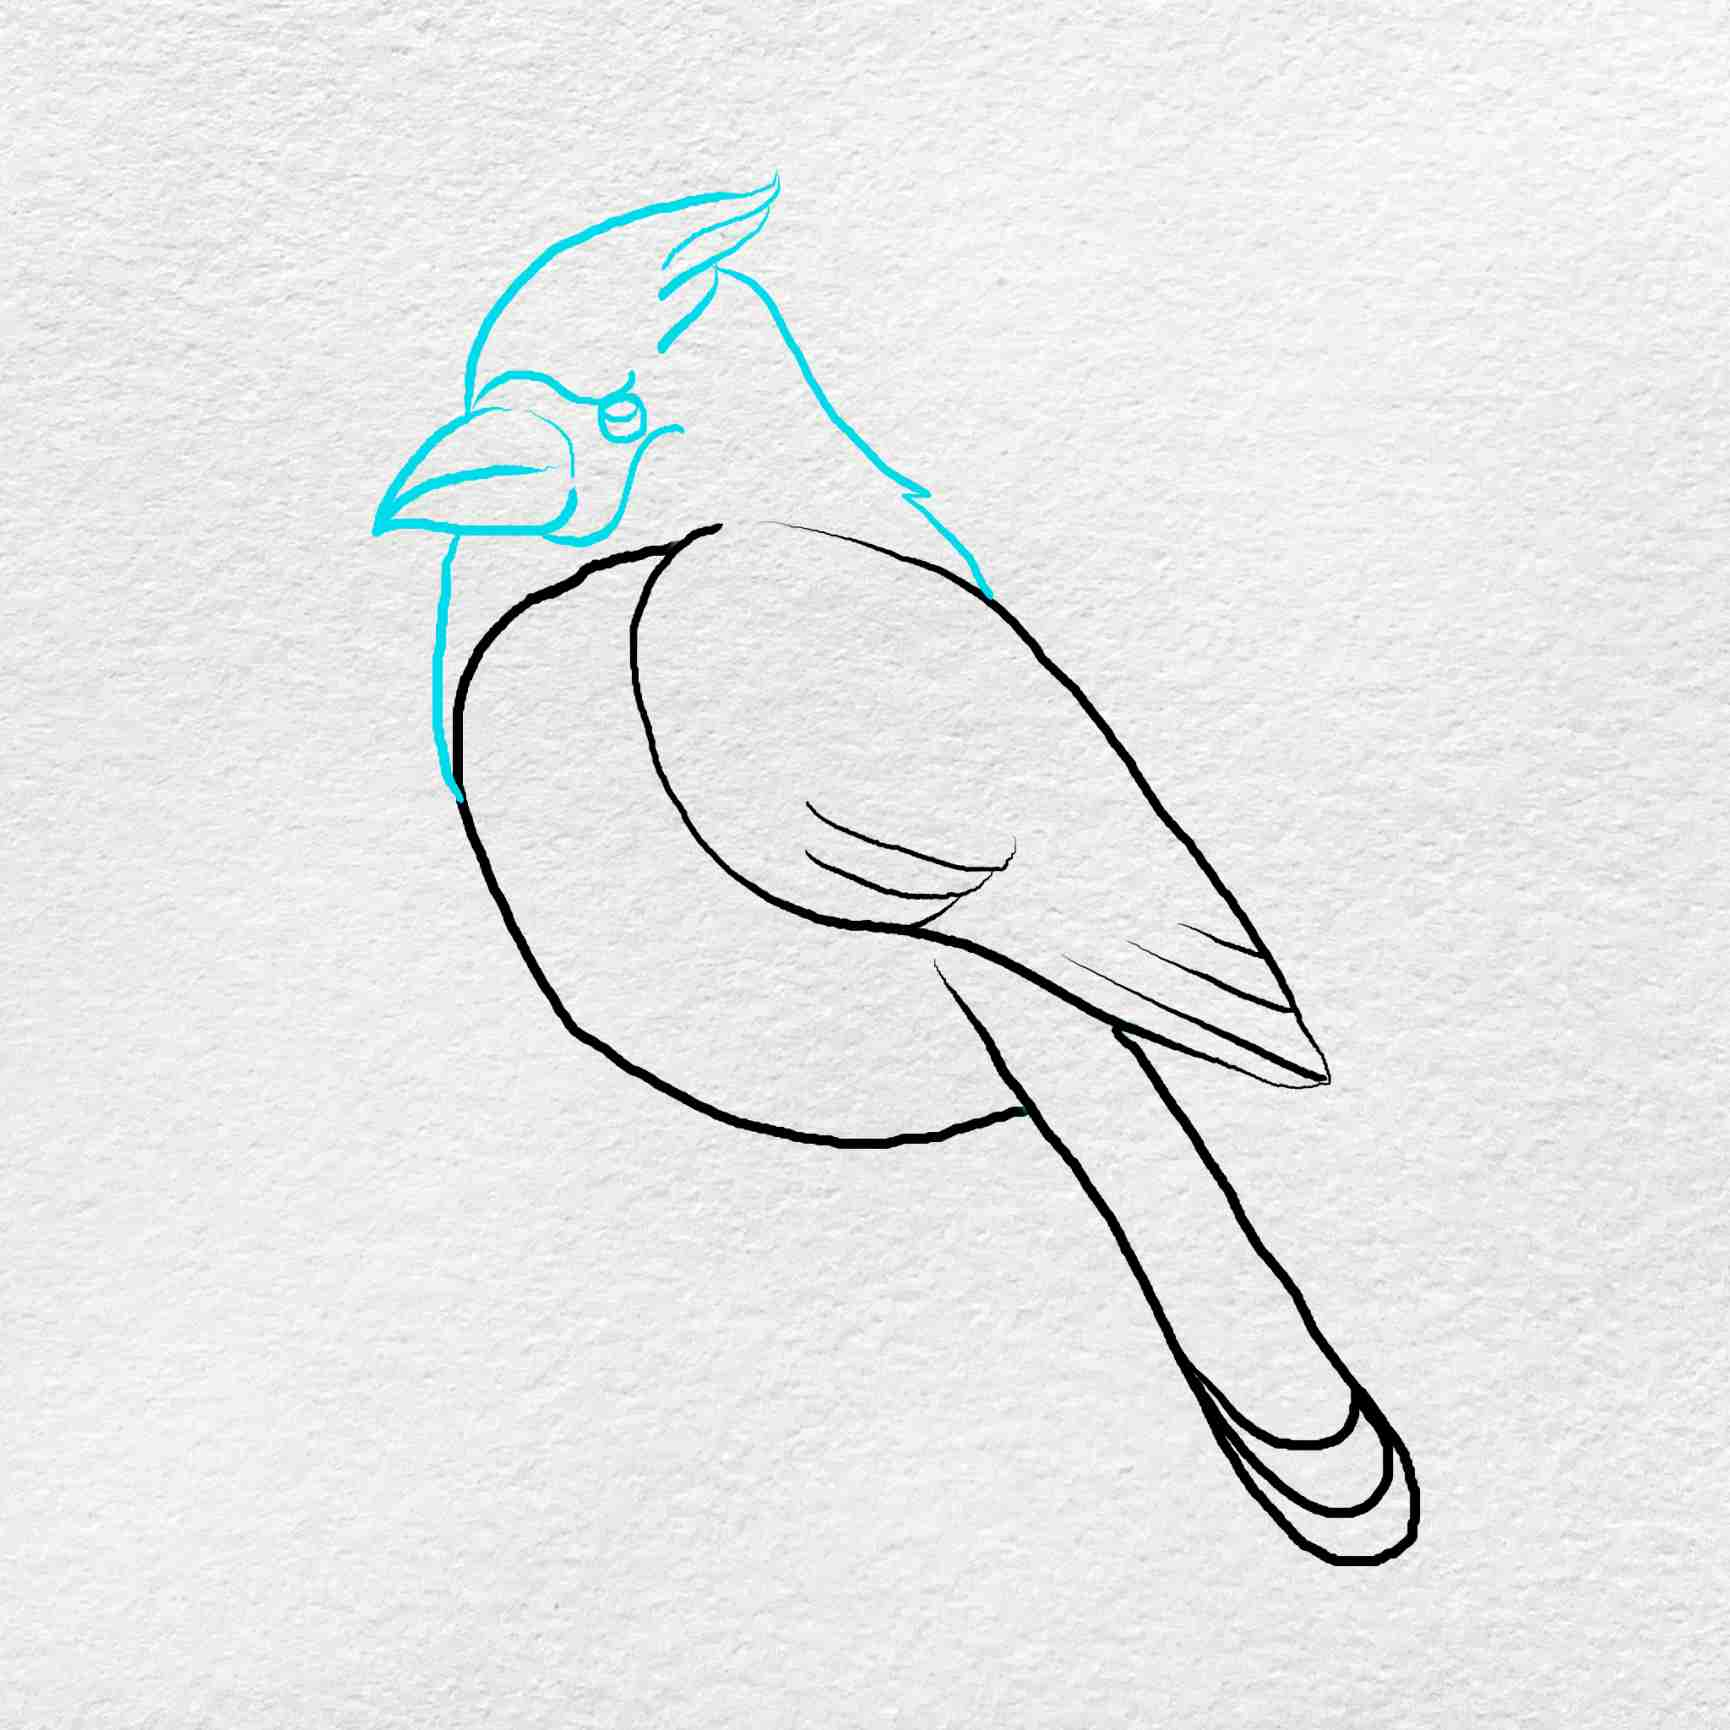 How To Draw A Cardinal: Step 4